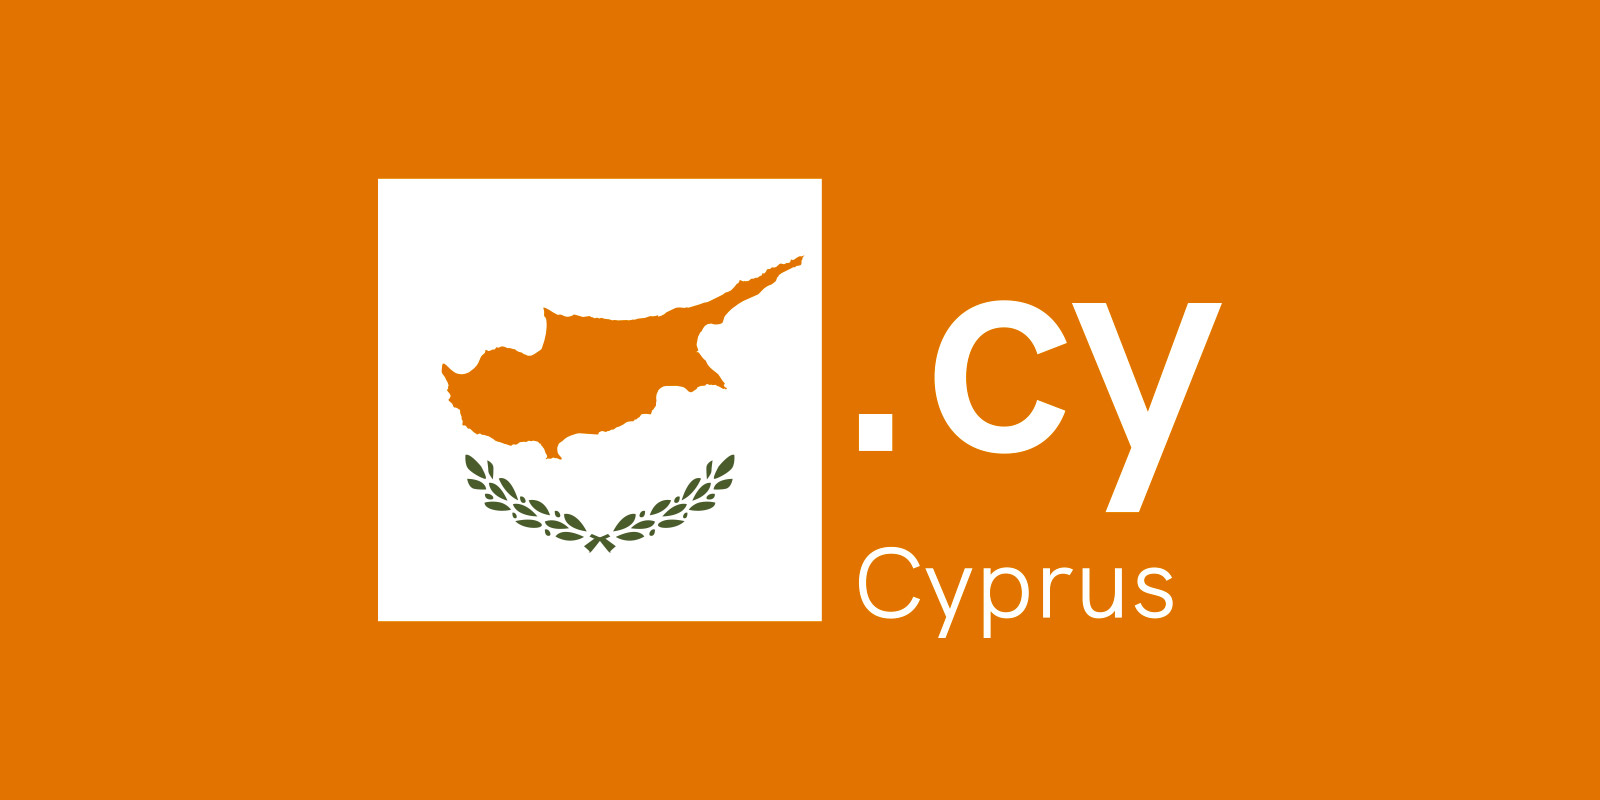 Cyprus has its own domain, .cy!